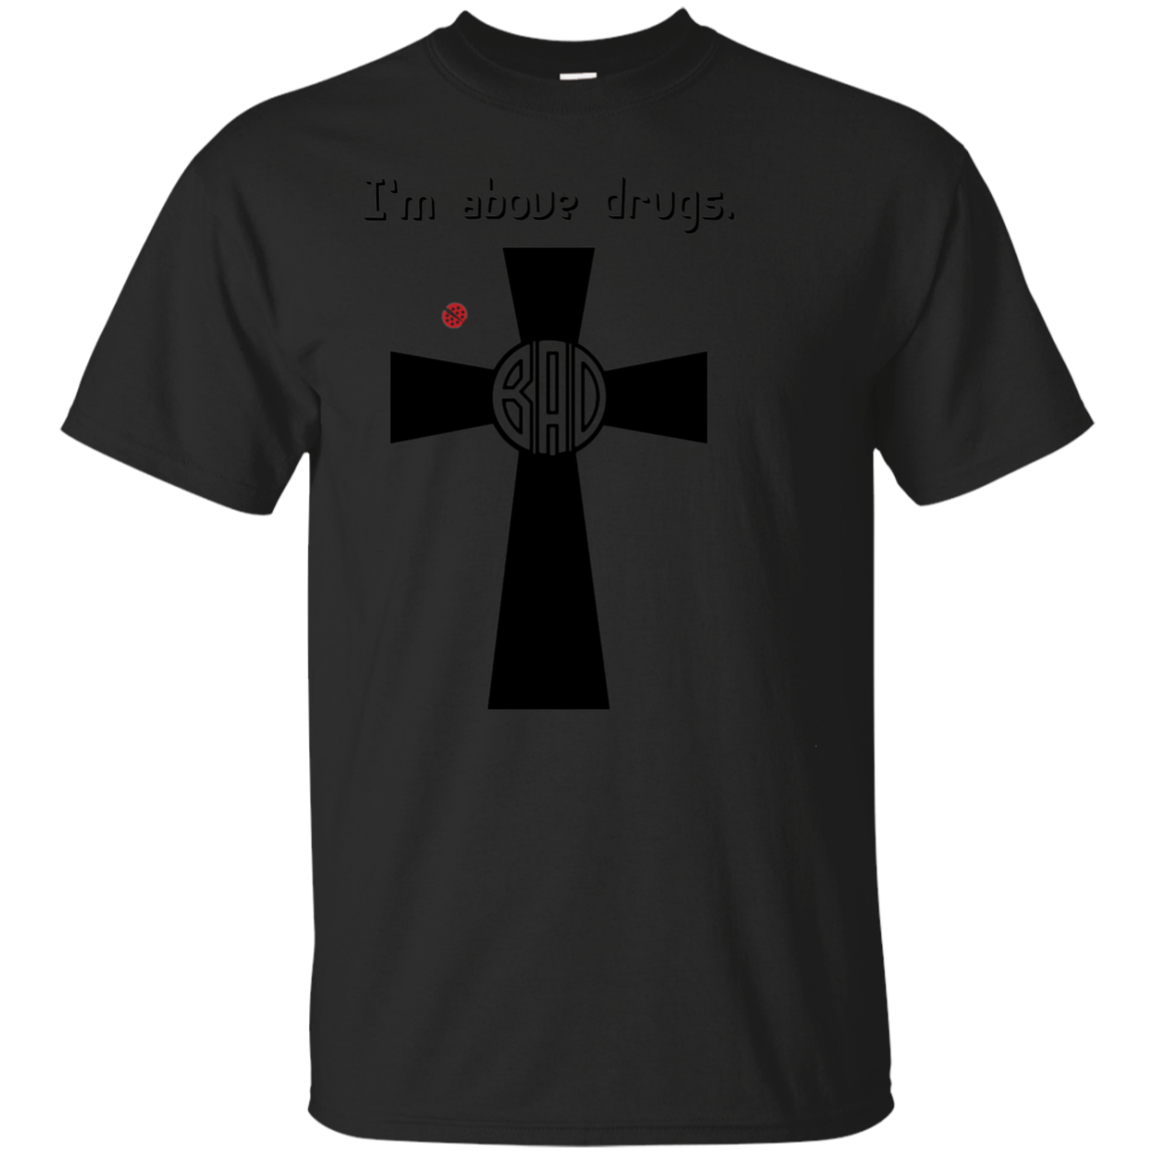 Be Above Drugs Cross Tee, Drug Prevention Clothing